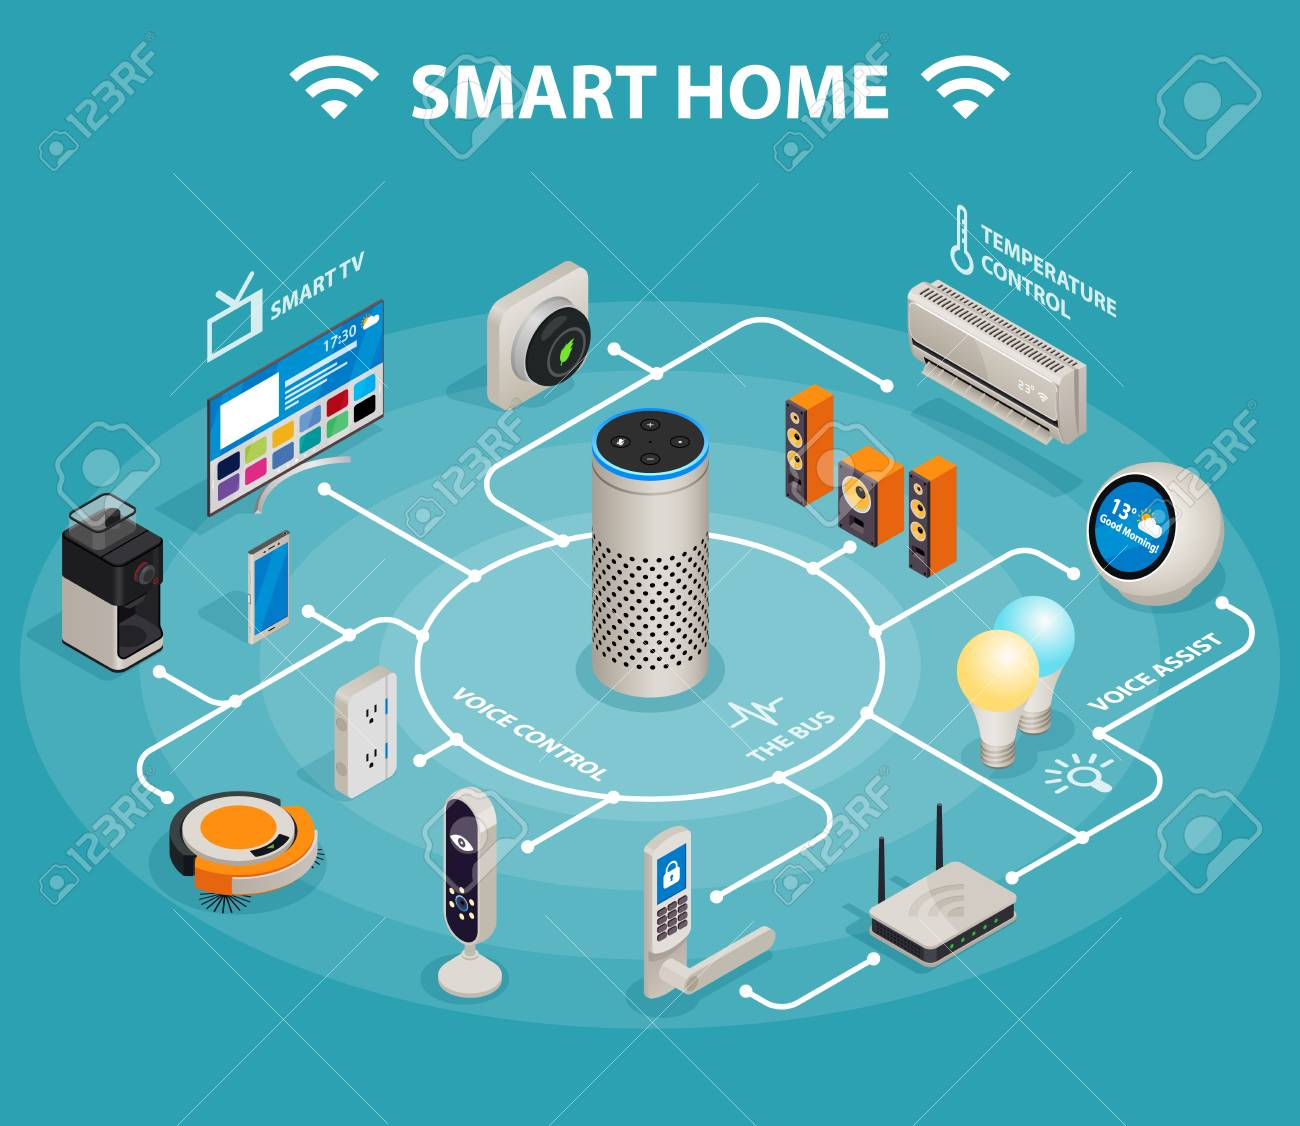 Smart home iot internet of things control comfort and security isometric infographic poster. - 110169776